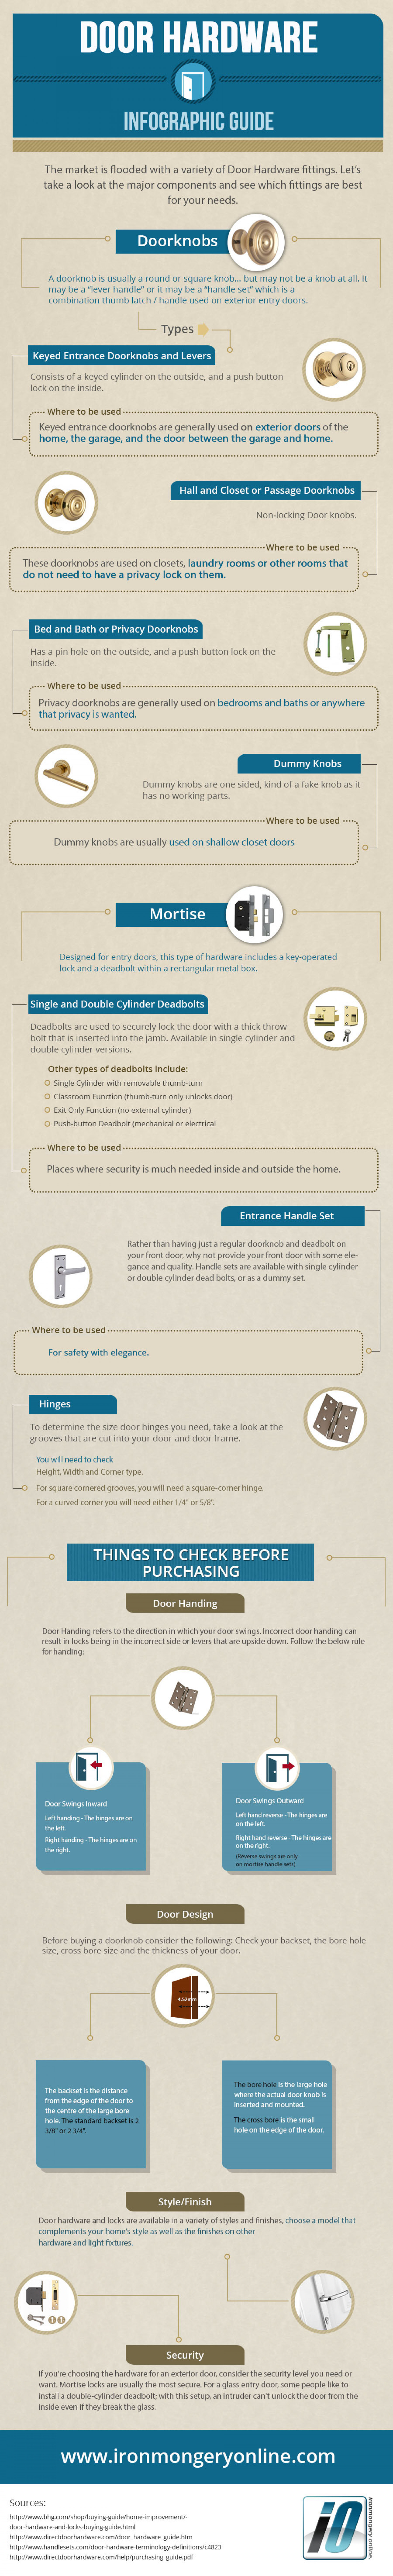 Door Hardware Infographic Guide Infographic